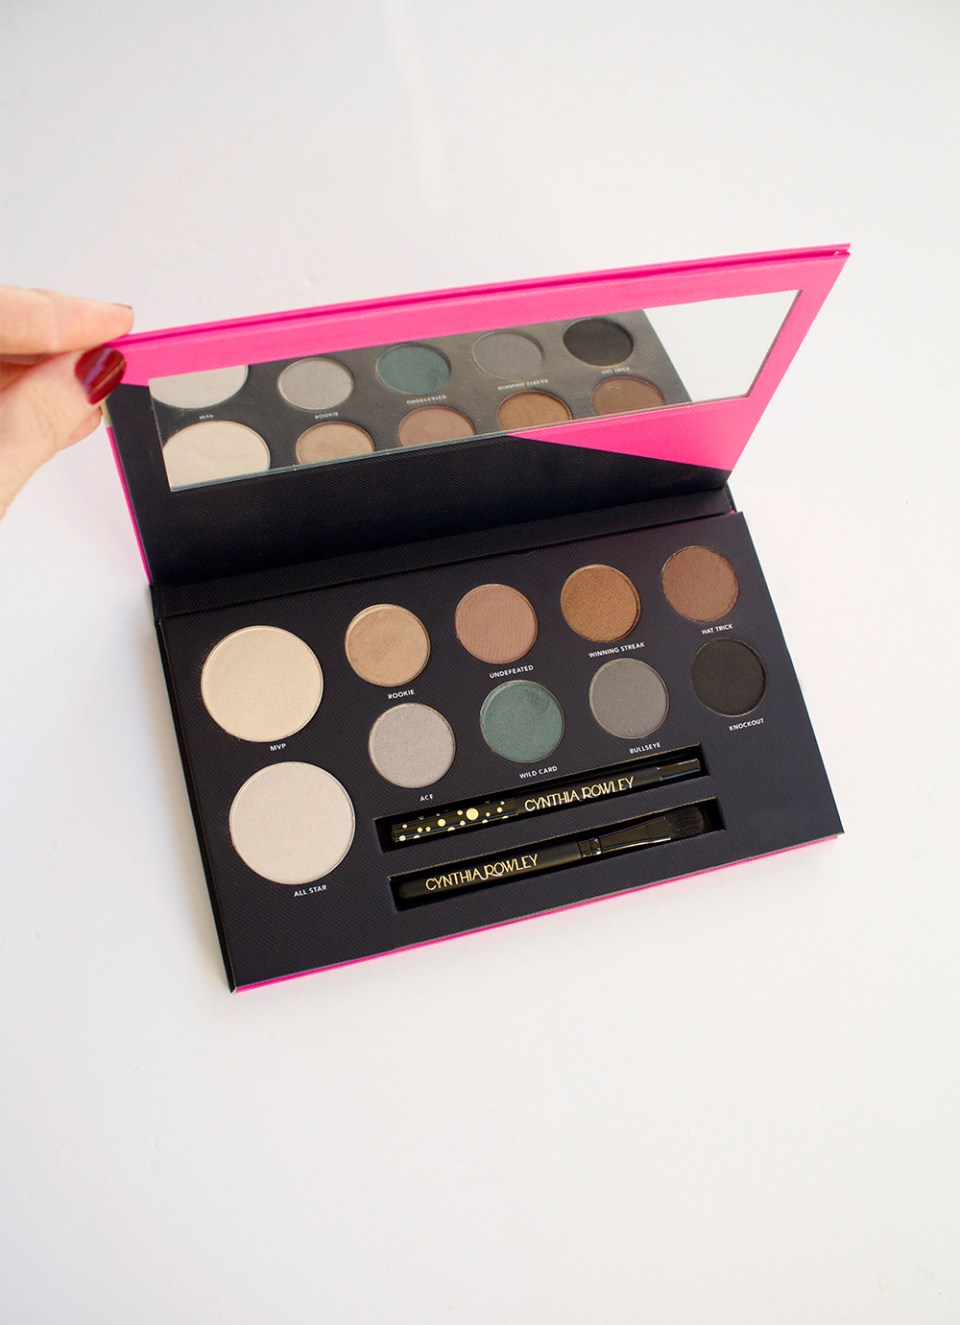 Cynthia-Rowley-Eyeshadoe-kit